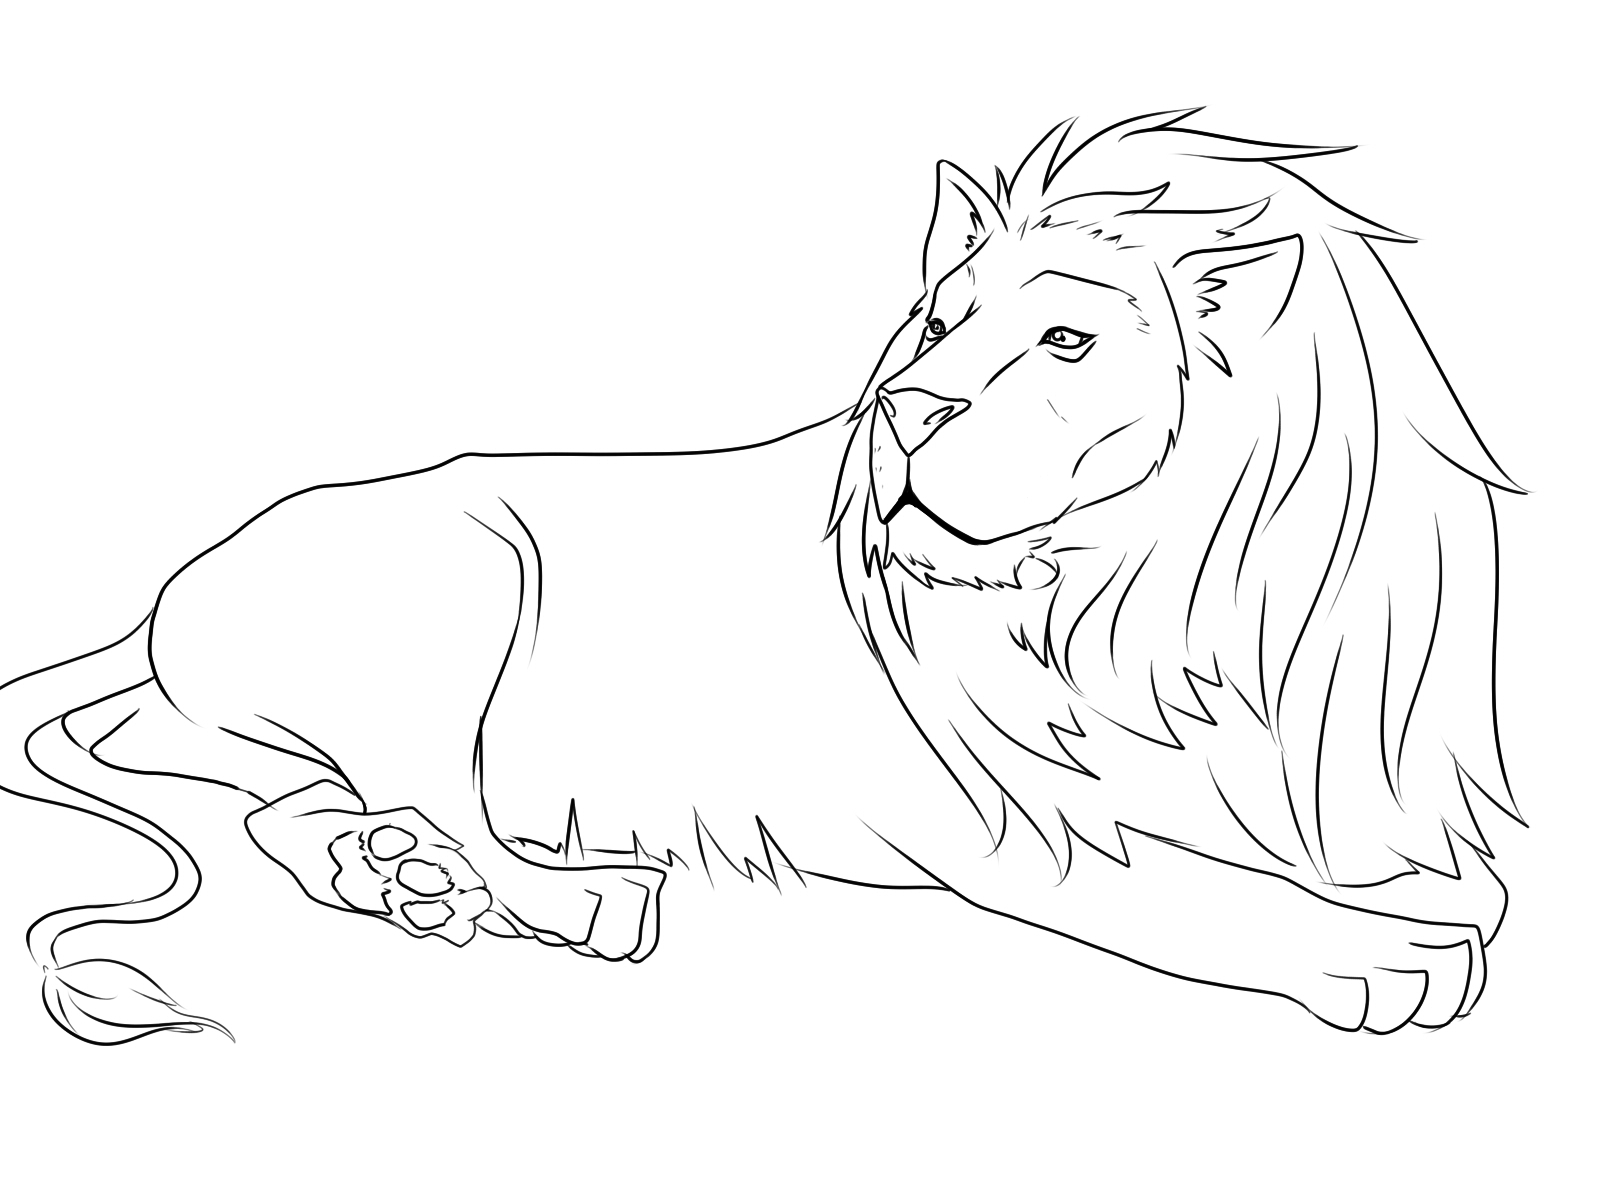 1600x1200 Lion And Mouse Coloring Page Coloring Pages Lion Coloring